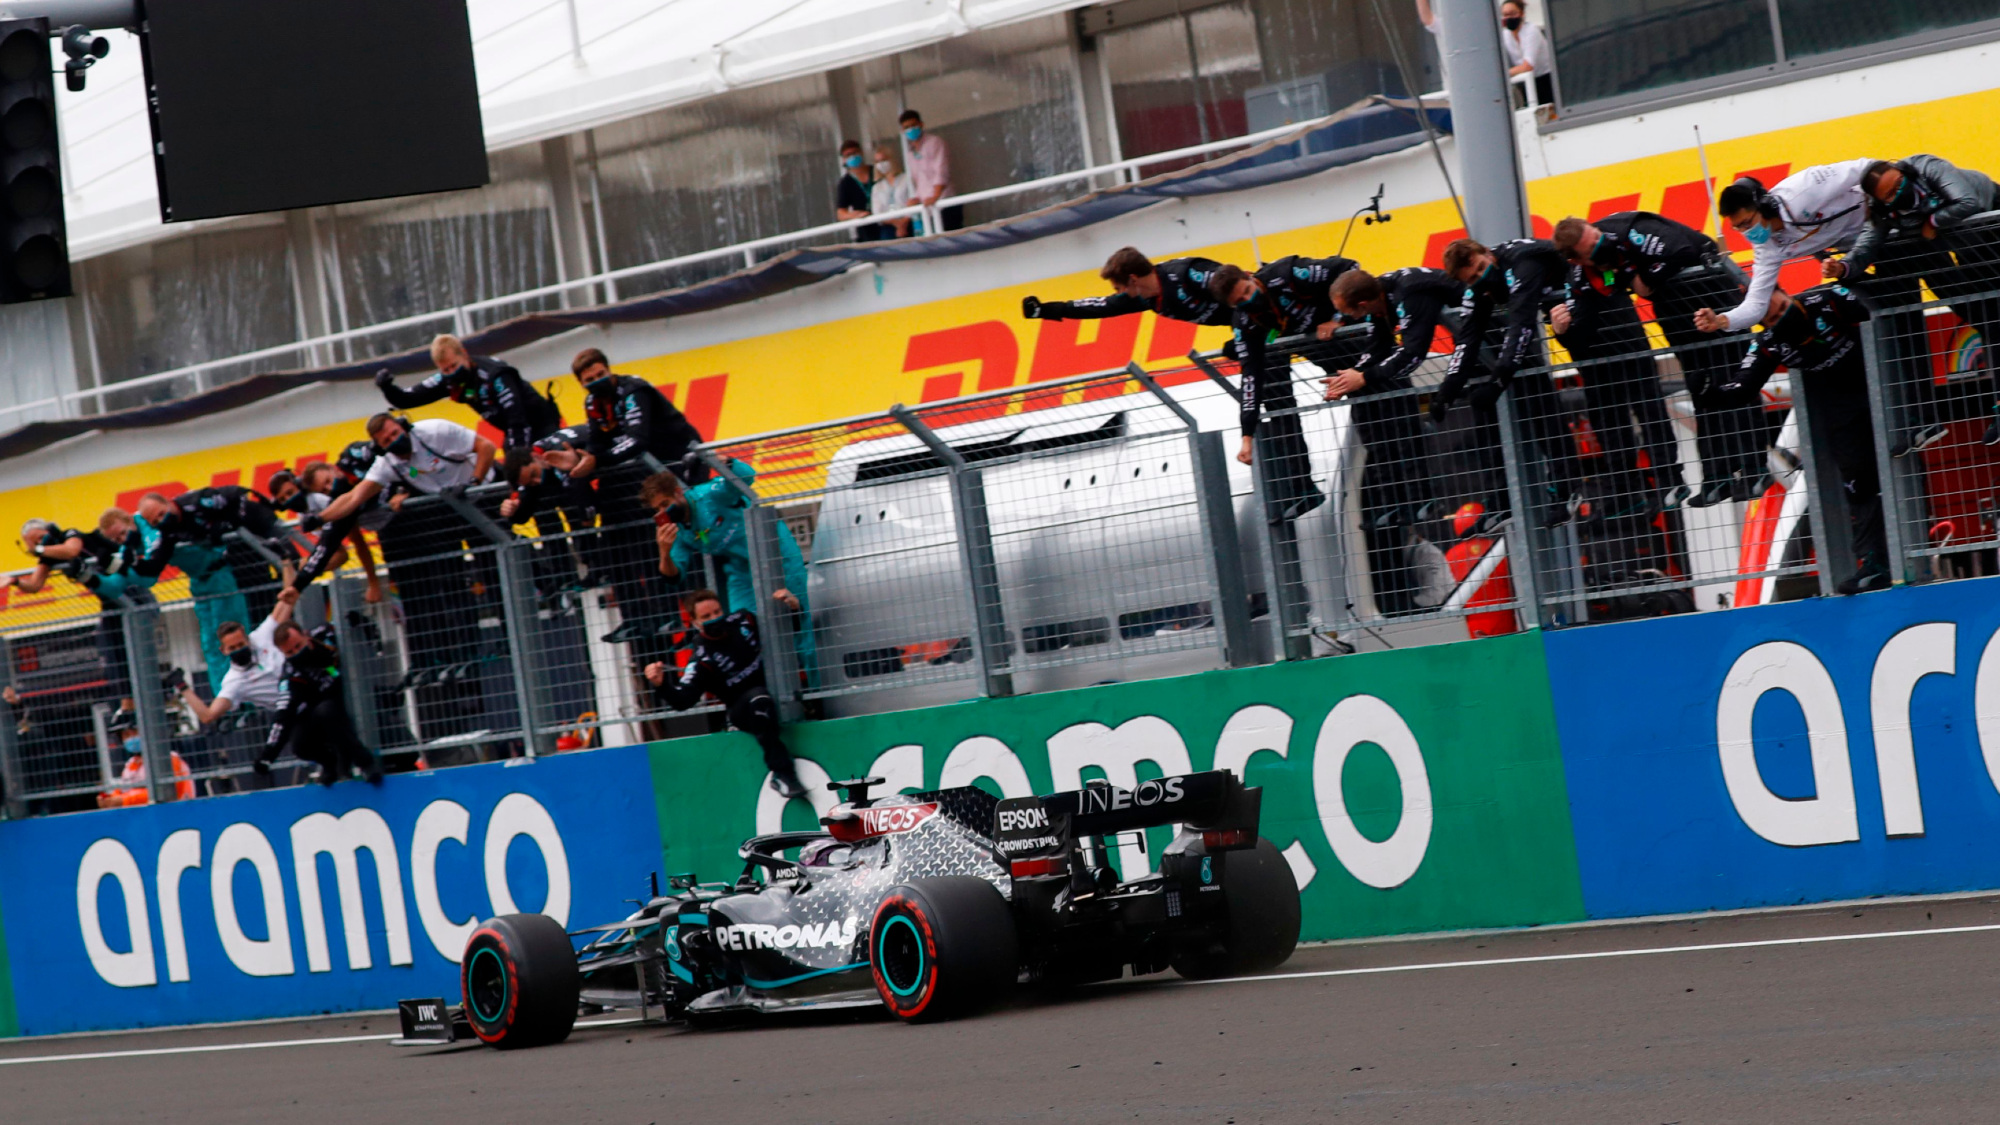 Will 2020 be the year Mercedes records a perfect F1 season?